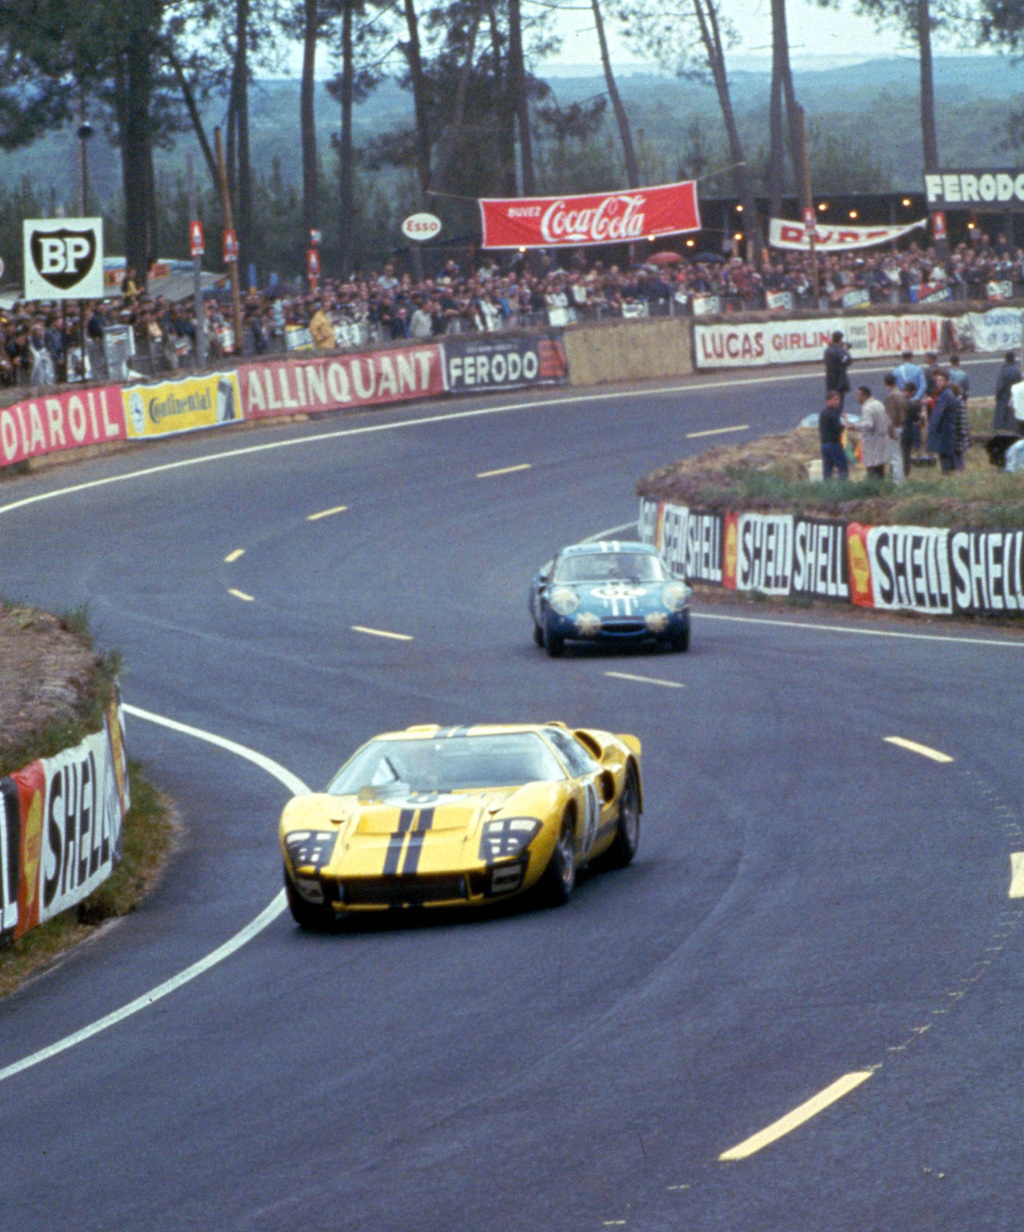 24 Hours of LeMans, LeMans, France, 1966. Sir John Whitmore/Frank Gardner Racing Ltd. Ford Mark II in the esses. CD#0554-3252-2890-15. Ford GT40 Supercars 1960s